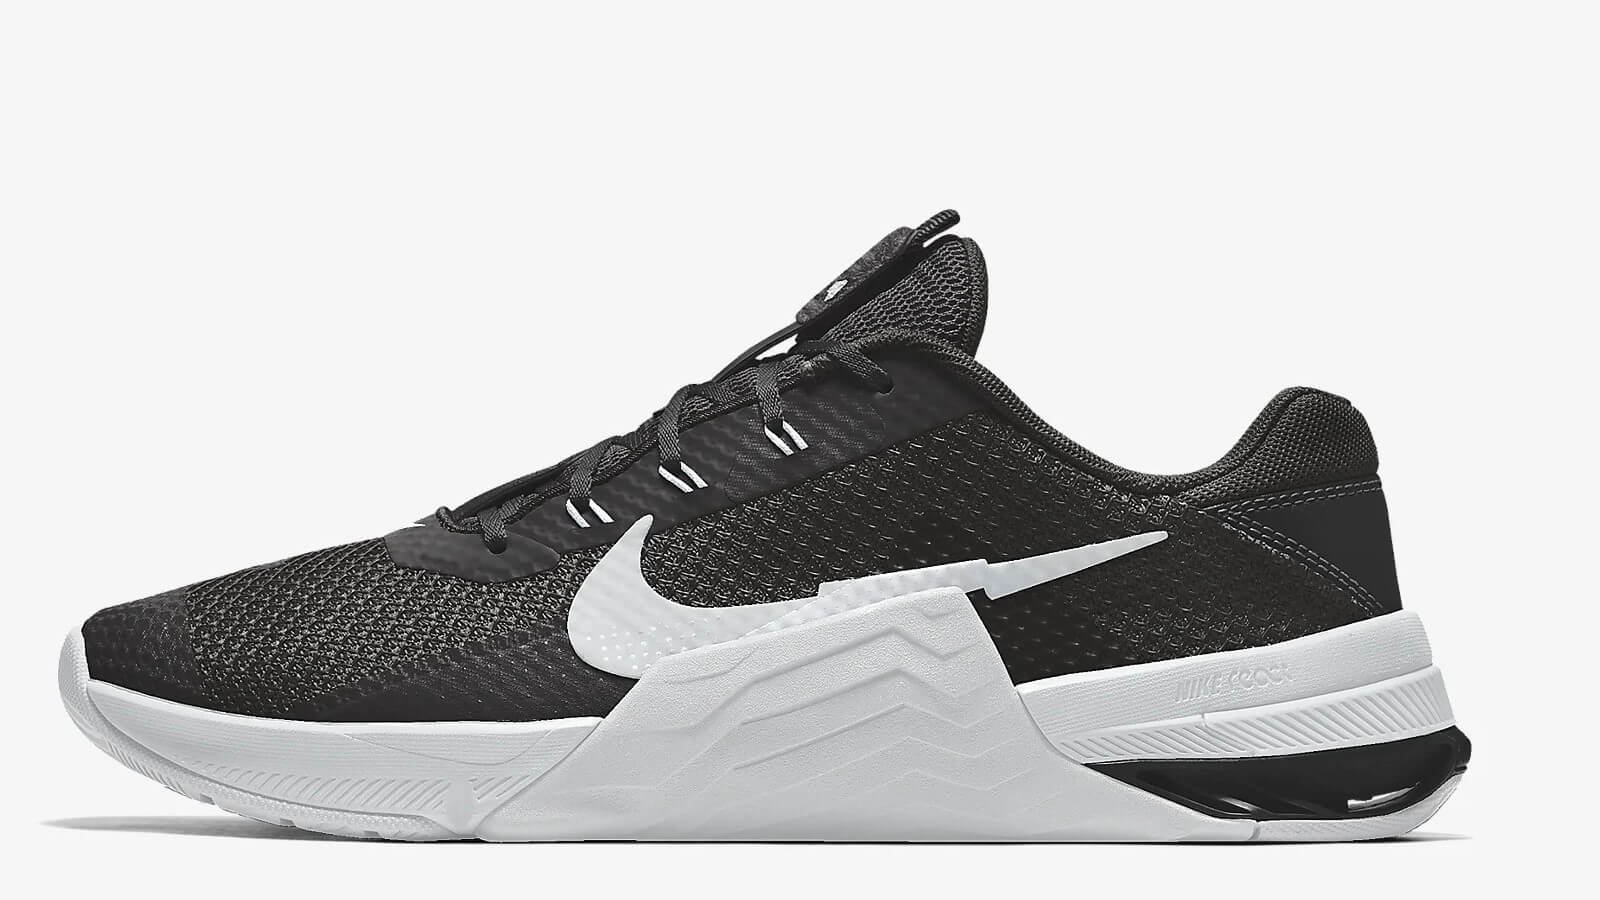 Nike Metcon 7 preview crossfit shoe in black and white